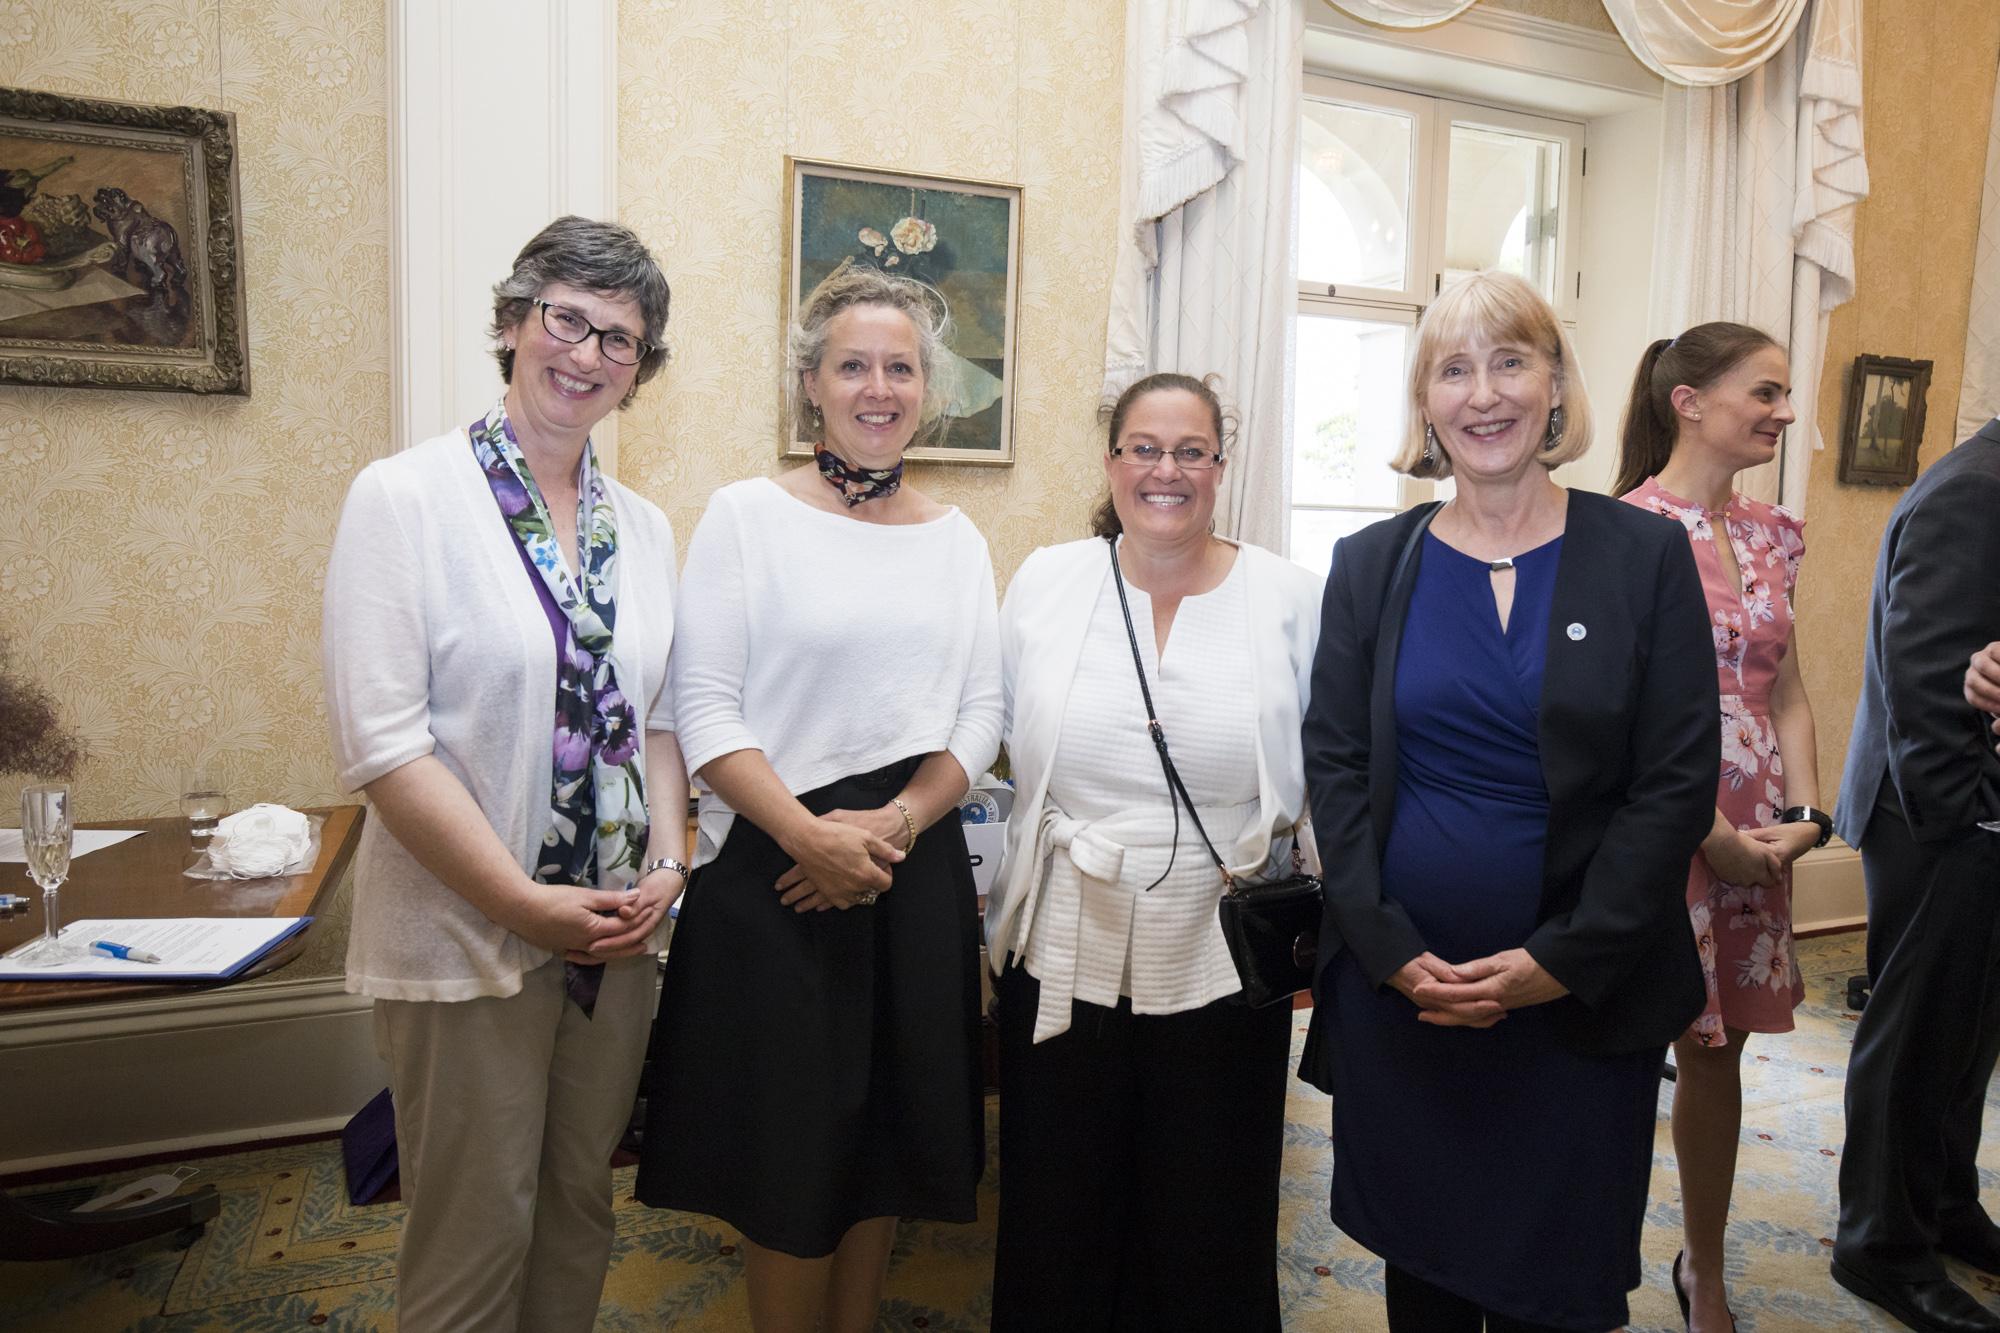 Carol Daicic, from Corrs, Chambers and Westgarth Lawyers and Australian Antarctic Division Chief Scientist Dr Gwen Fenton with Alison Johannes and Jacqui Allan from the Australian Antarctic Division